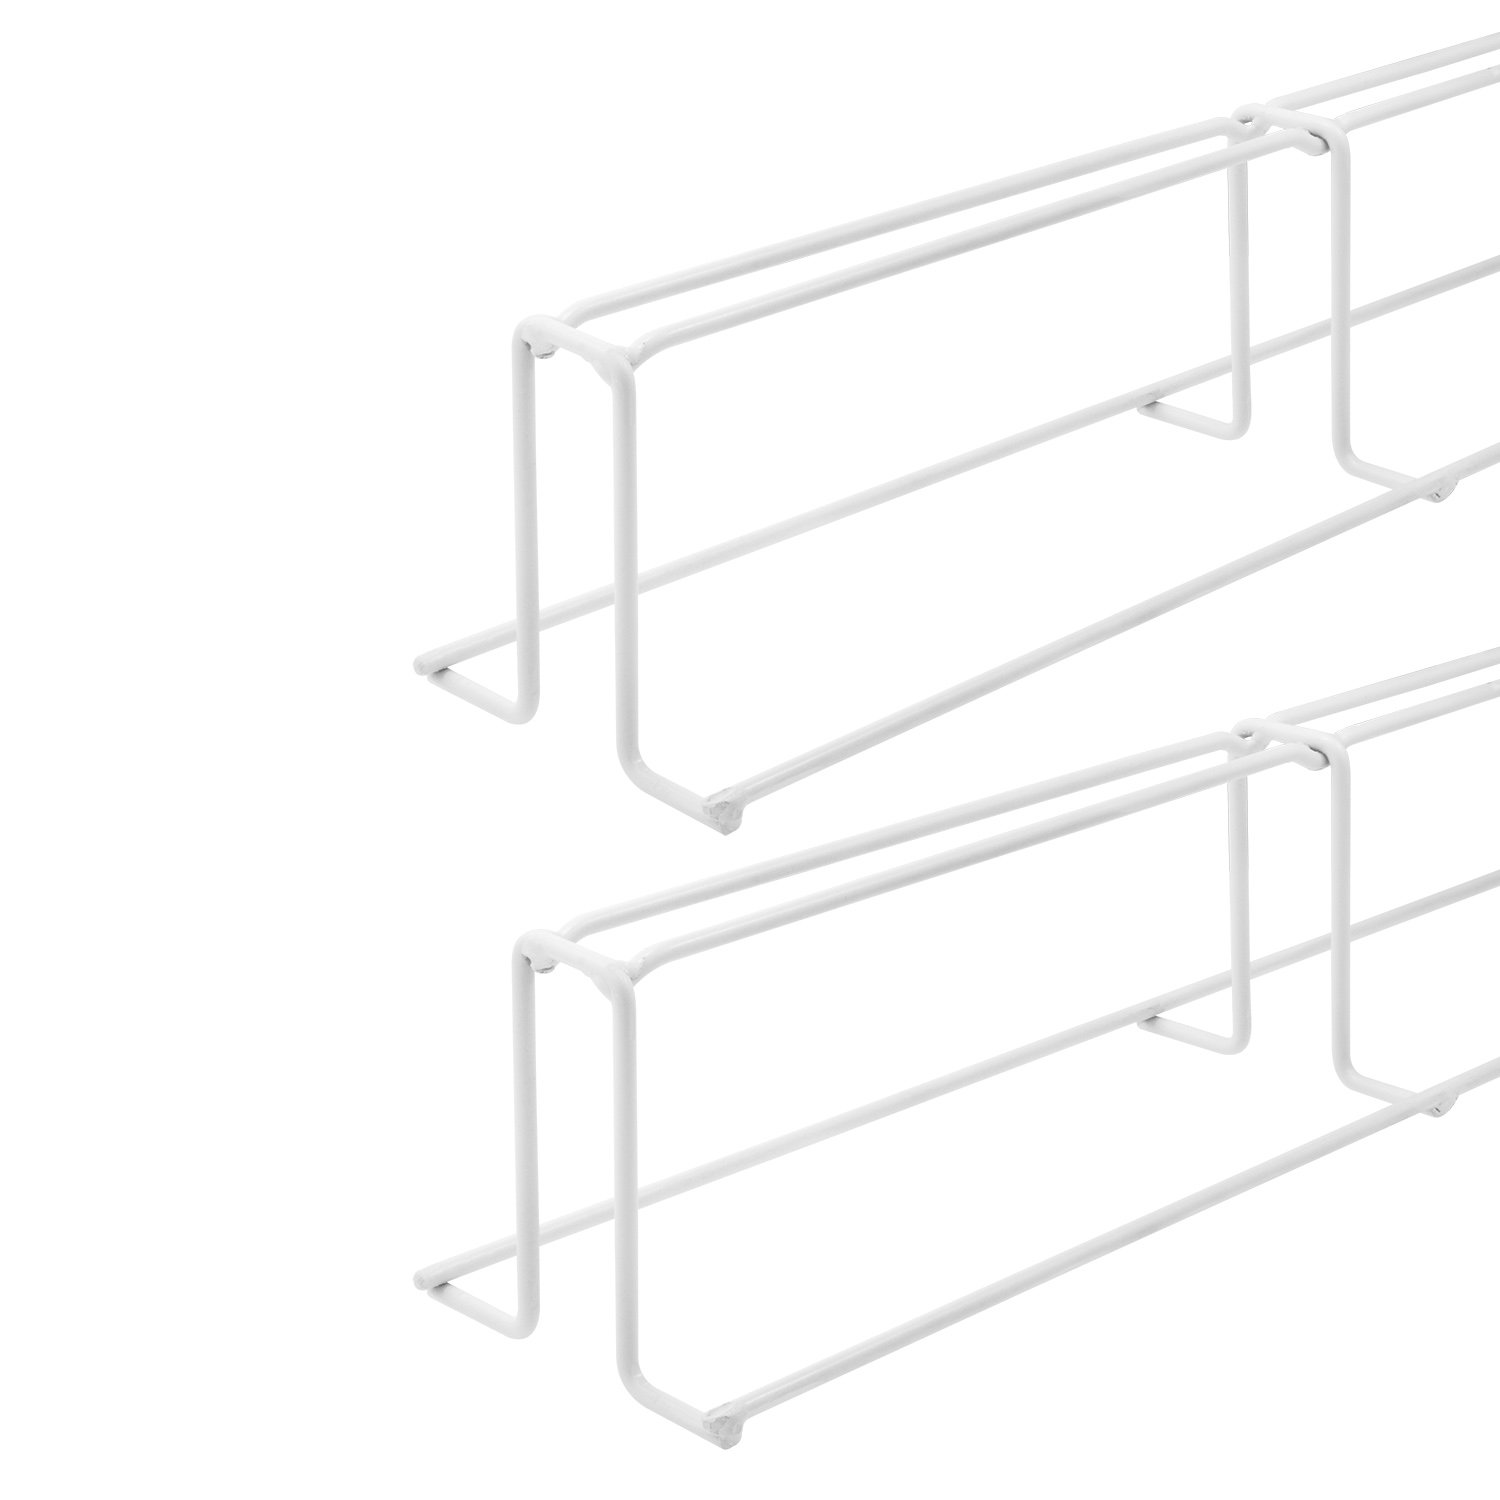 Garage Storage Rack System, Ceiling Mounted,  White, 1 Set by Tote Trac